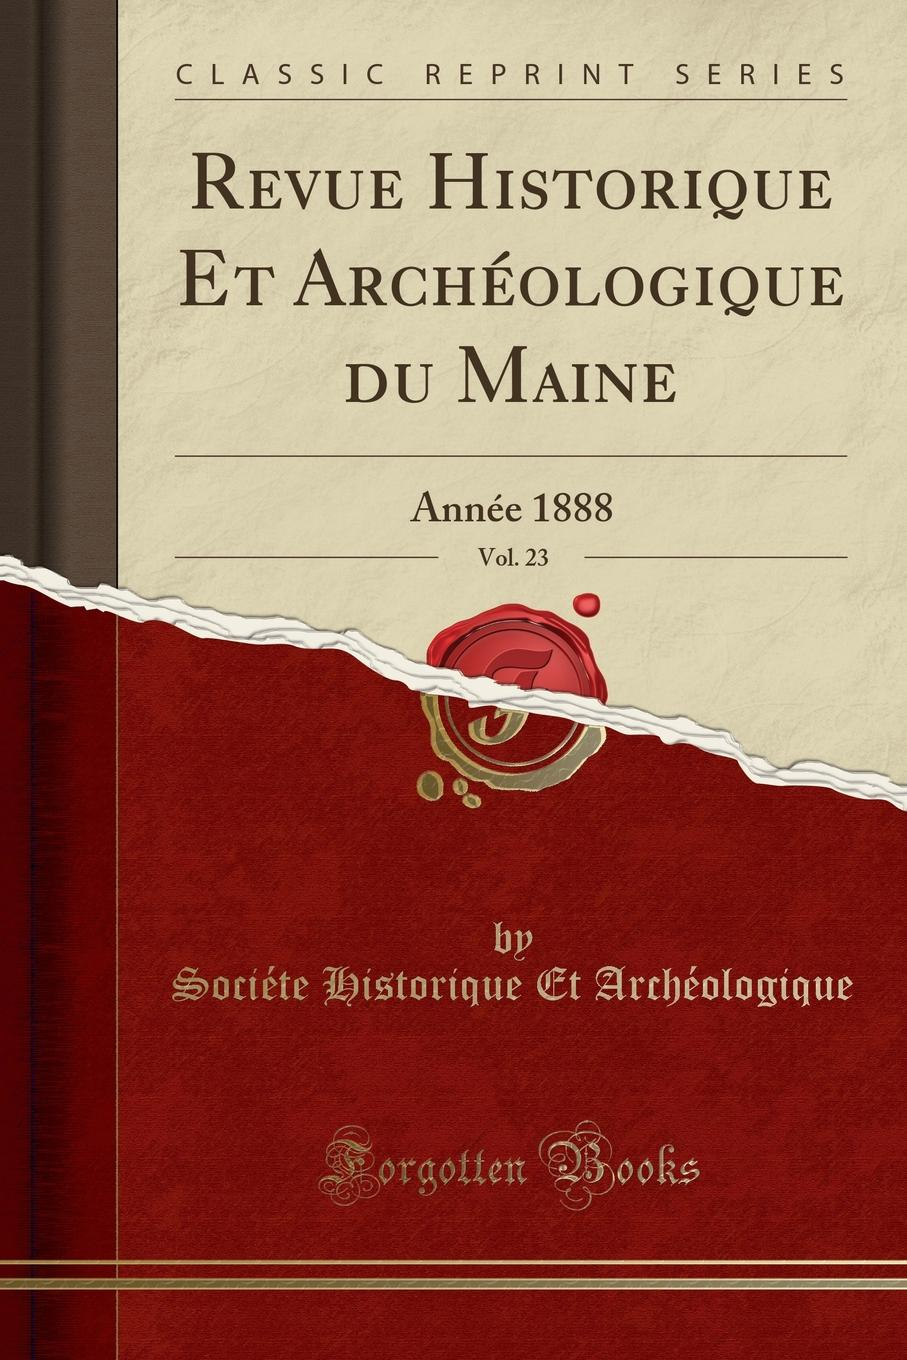 Sociéte Historique Et Archéologique Revue Historique Et Archeologique du Maine, Vol. 23. Annee 1888 (Classic Reprint) paul laurent revue historique ardennaise vol 3 annee 1896 classic reprint